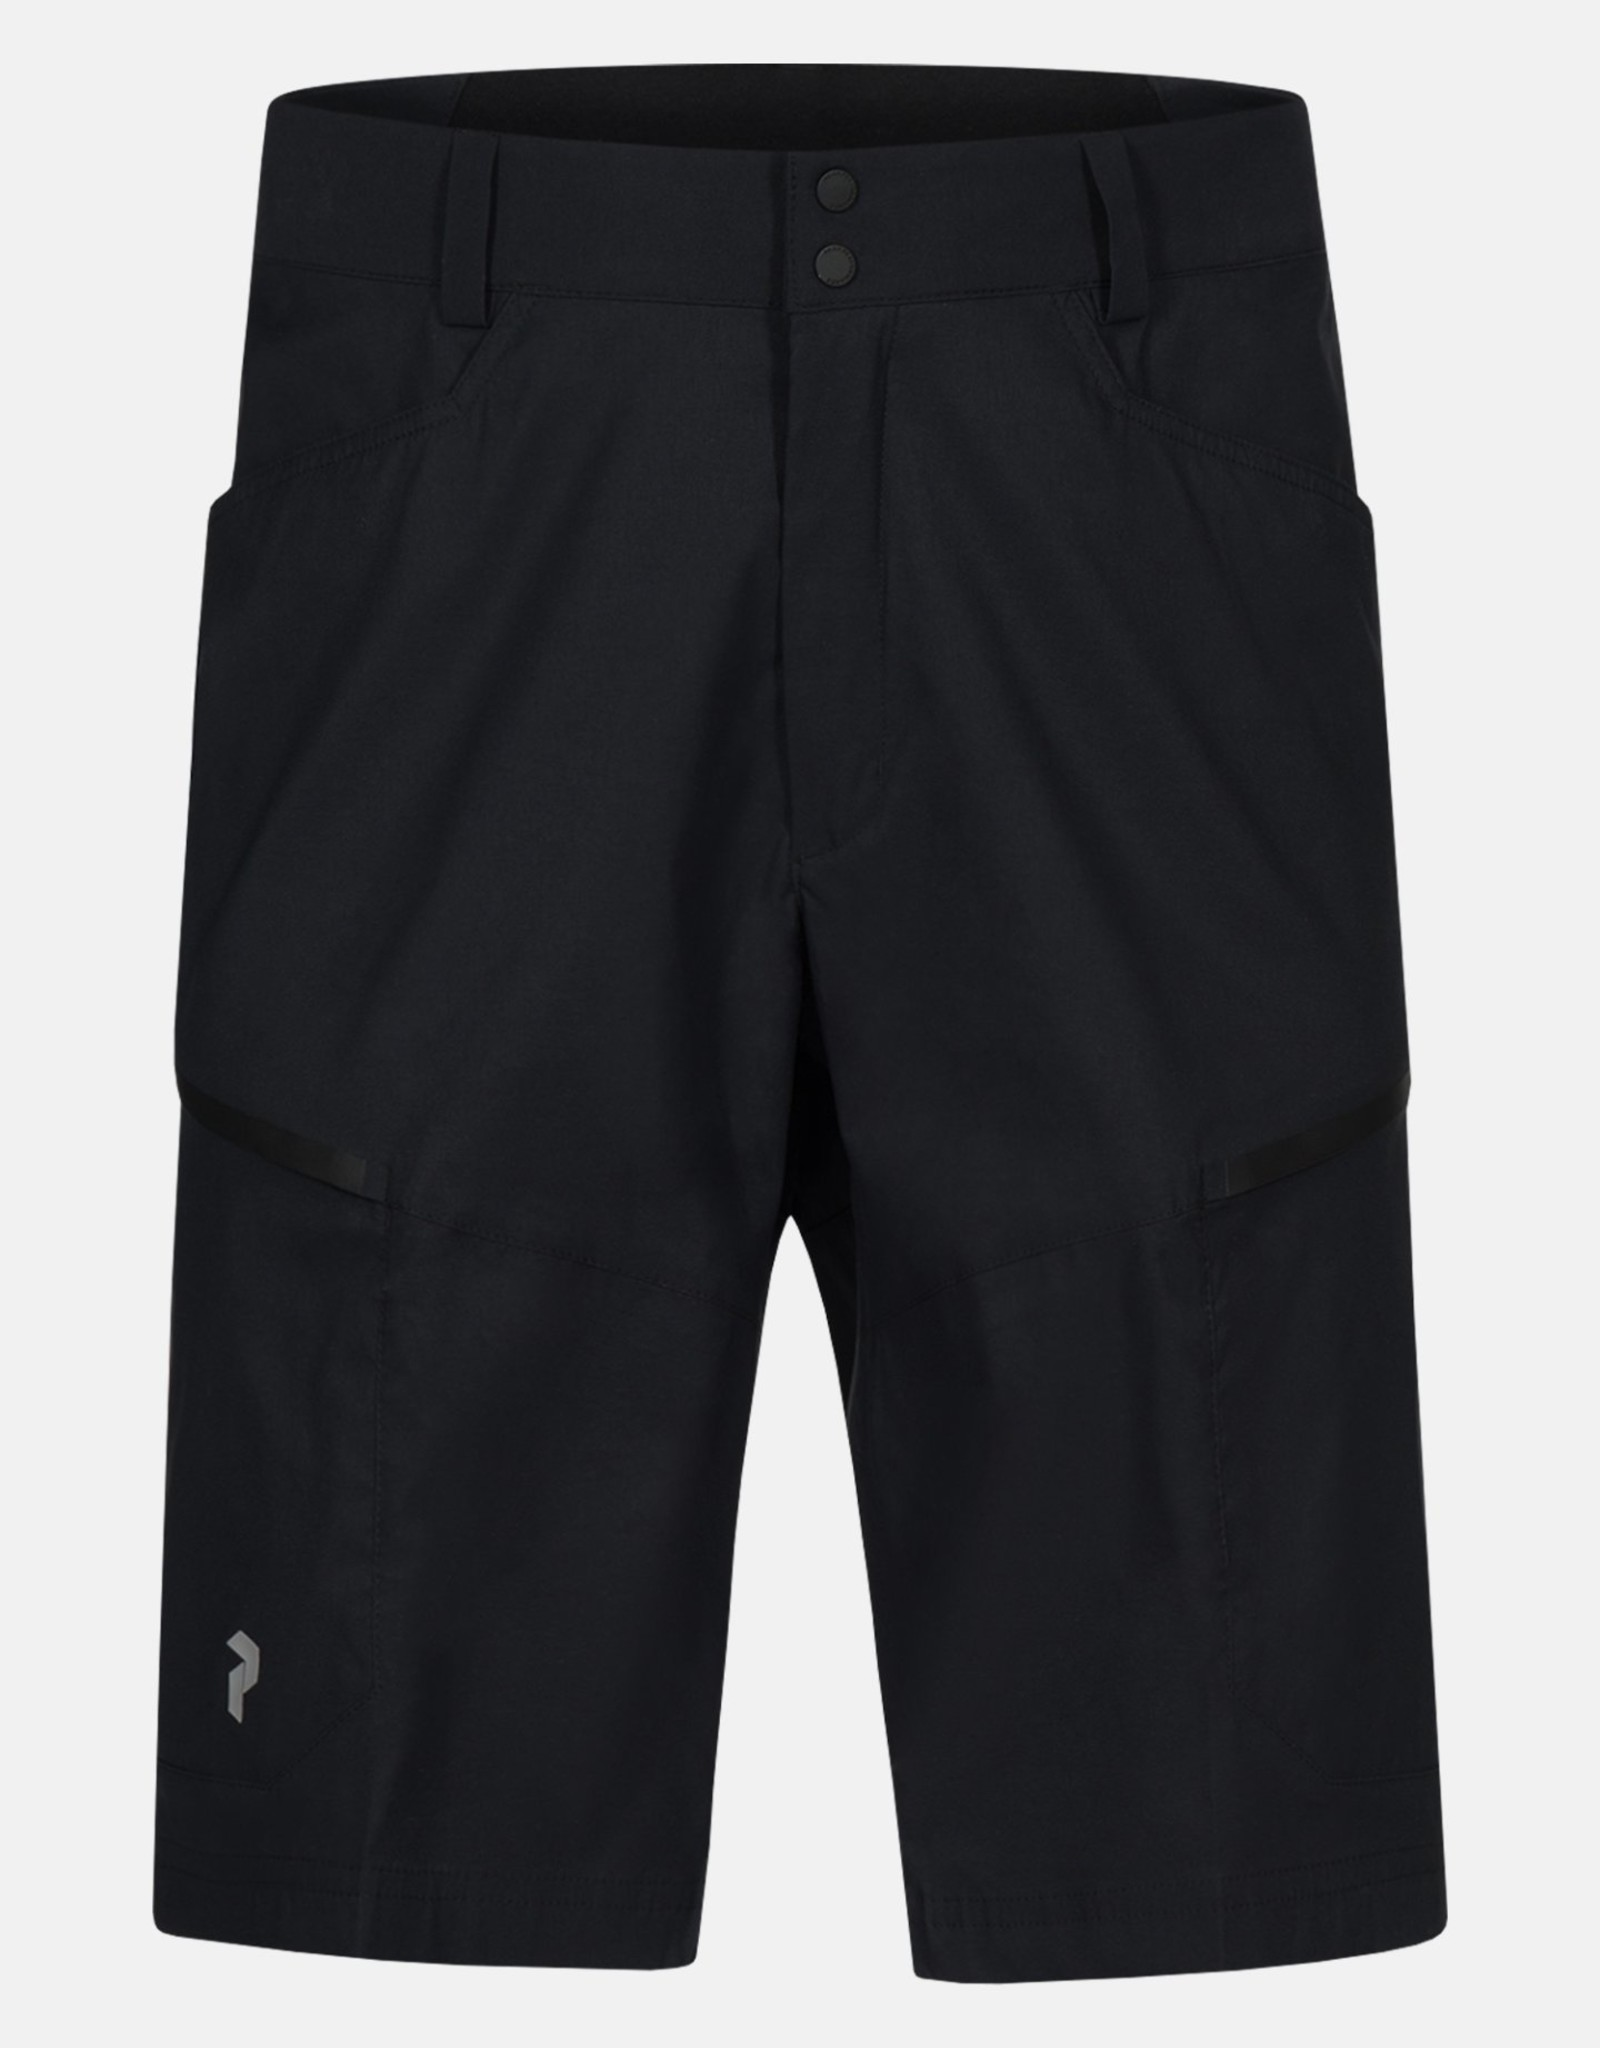 Peak Performance PEAK PERFORMANCE MEN'S ICONIQ CARGO SHORTS - S2019